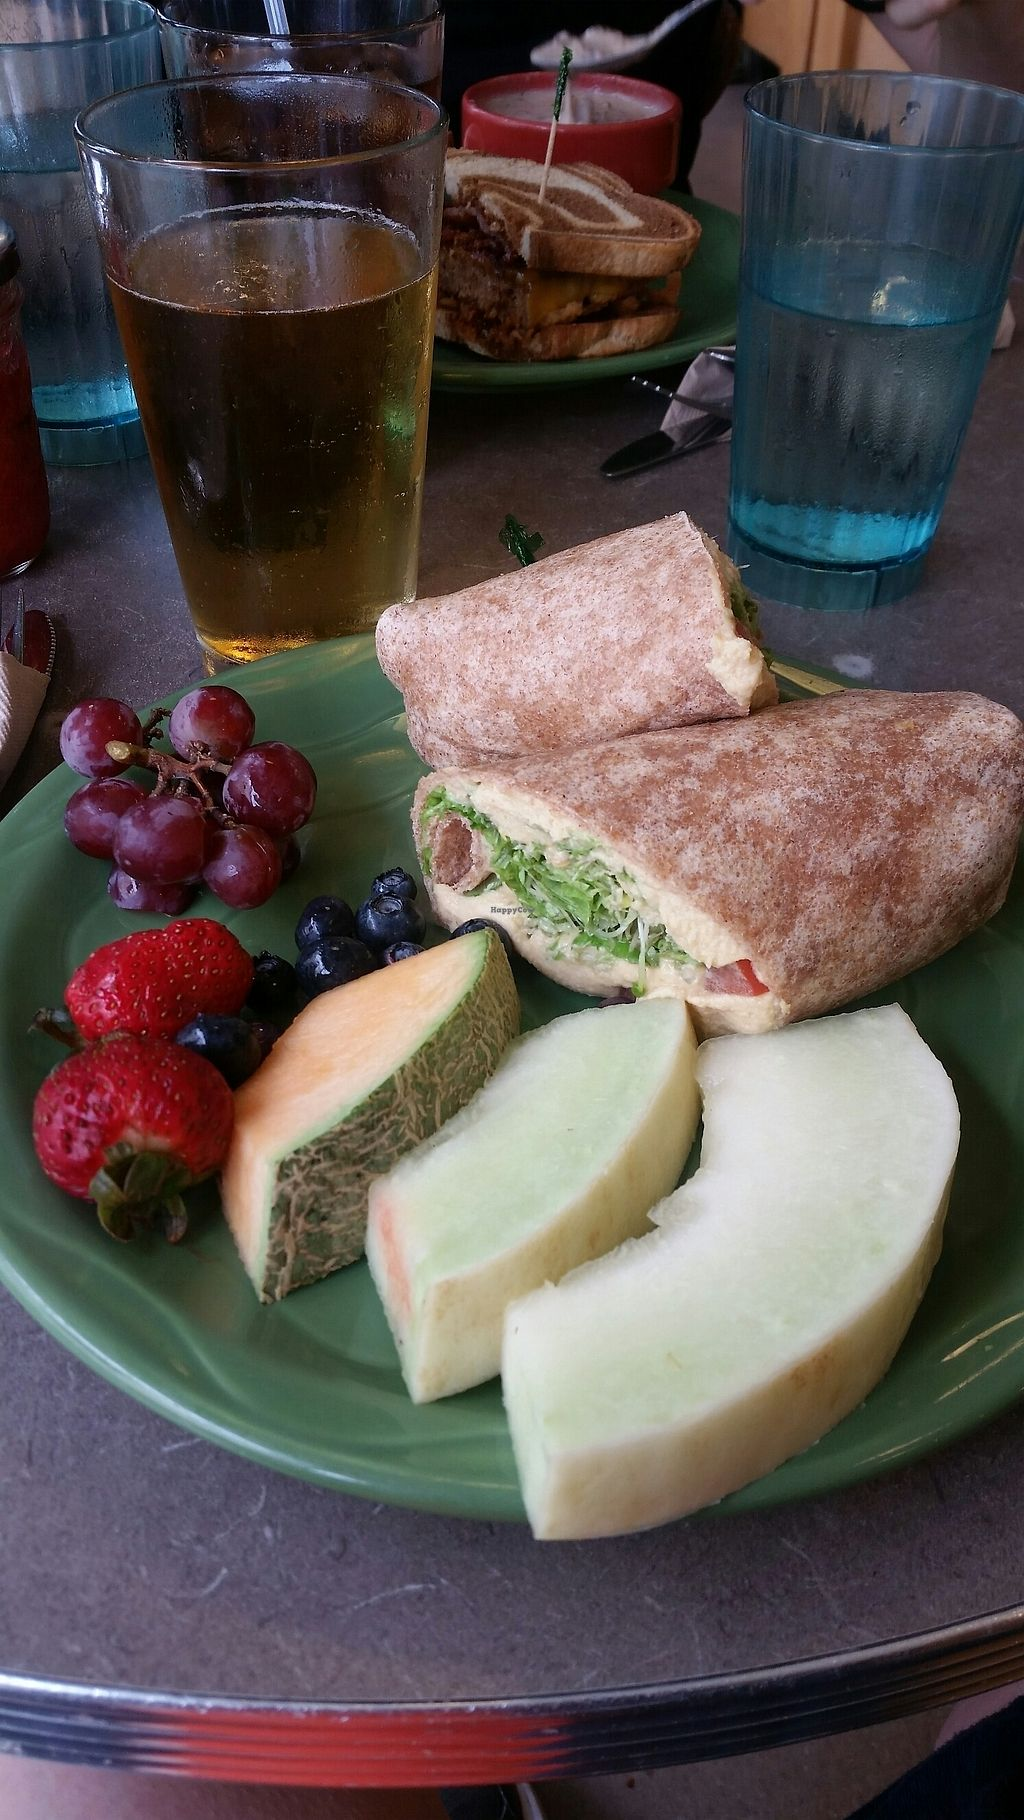 """Photo of Snow City Cafe  by <a href=""""/members/profile/Christel79"""">Christel79</a> <br/>hummus wrap with fresh fruit <br/> July 28, 2017  - <a href='/contact/abuse/image/45595/285717'>Report</a>"""